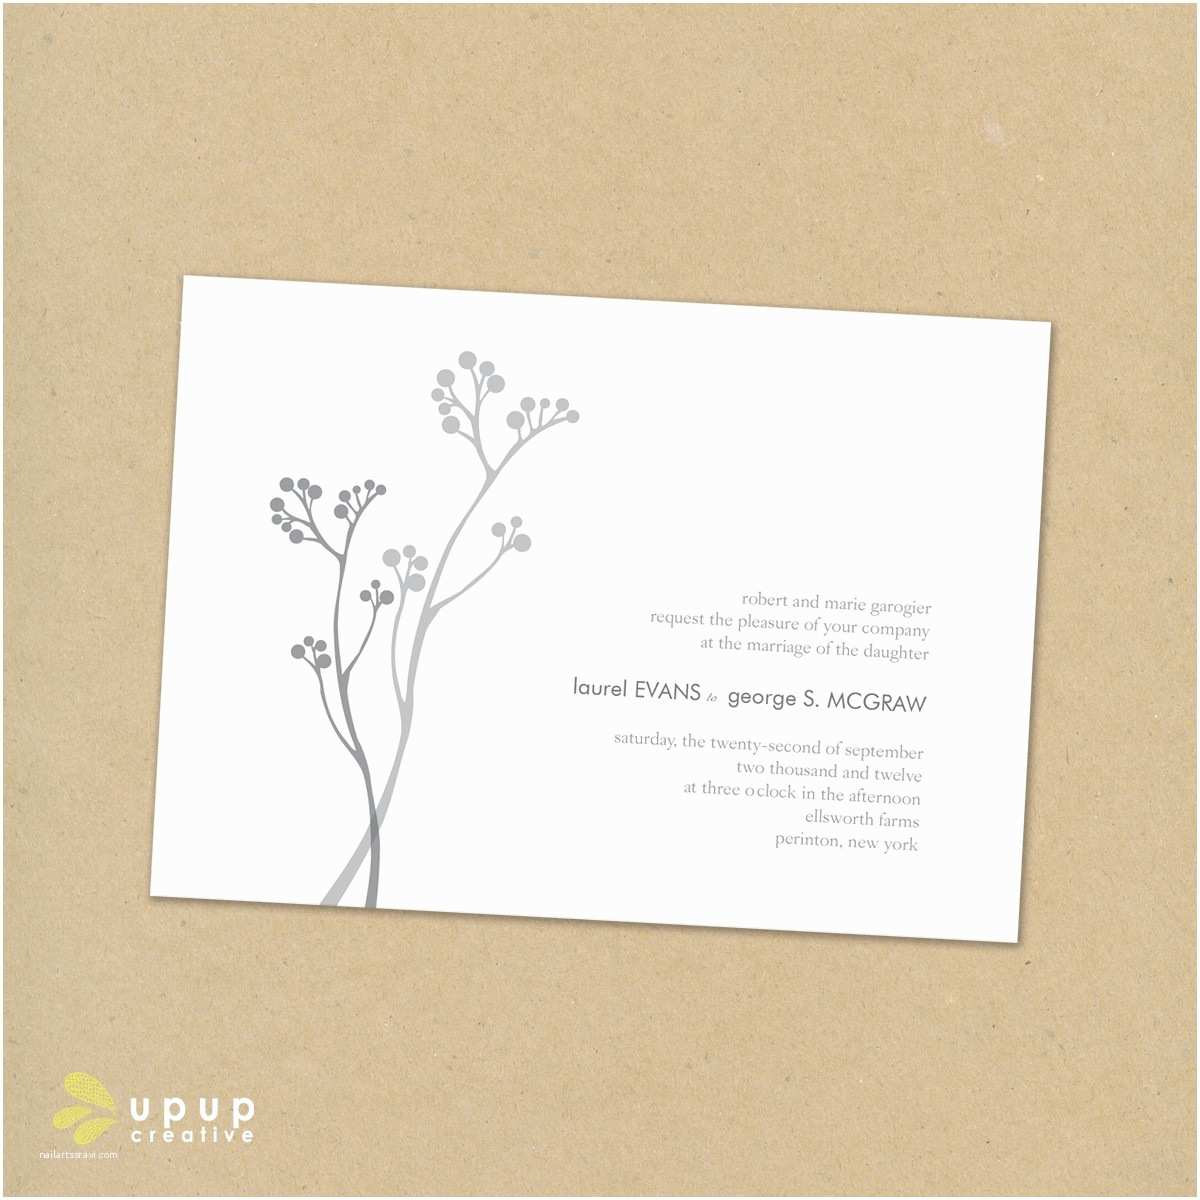 How to Design Wedding Invitations How to Wedding Invitations Costco Ideas for